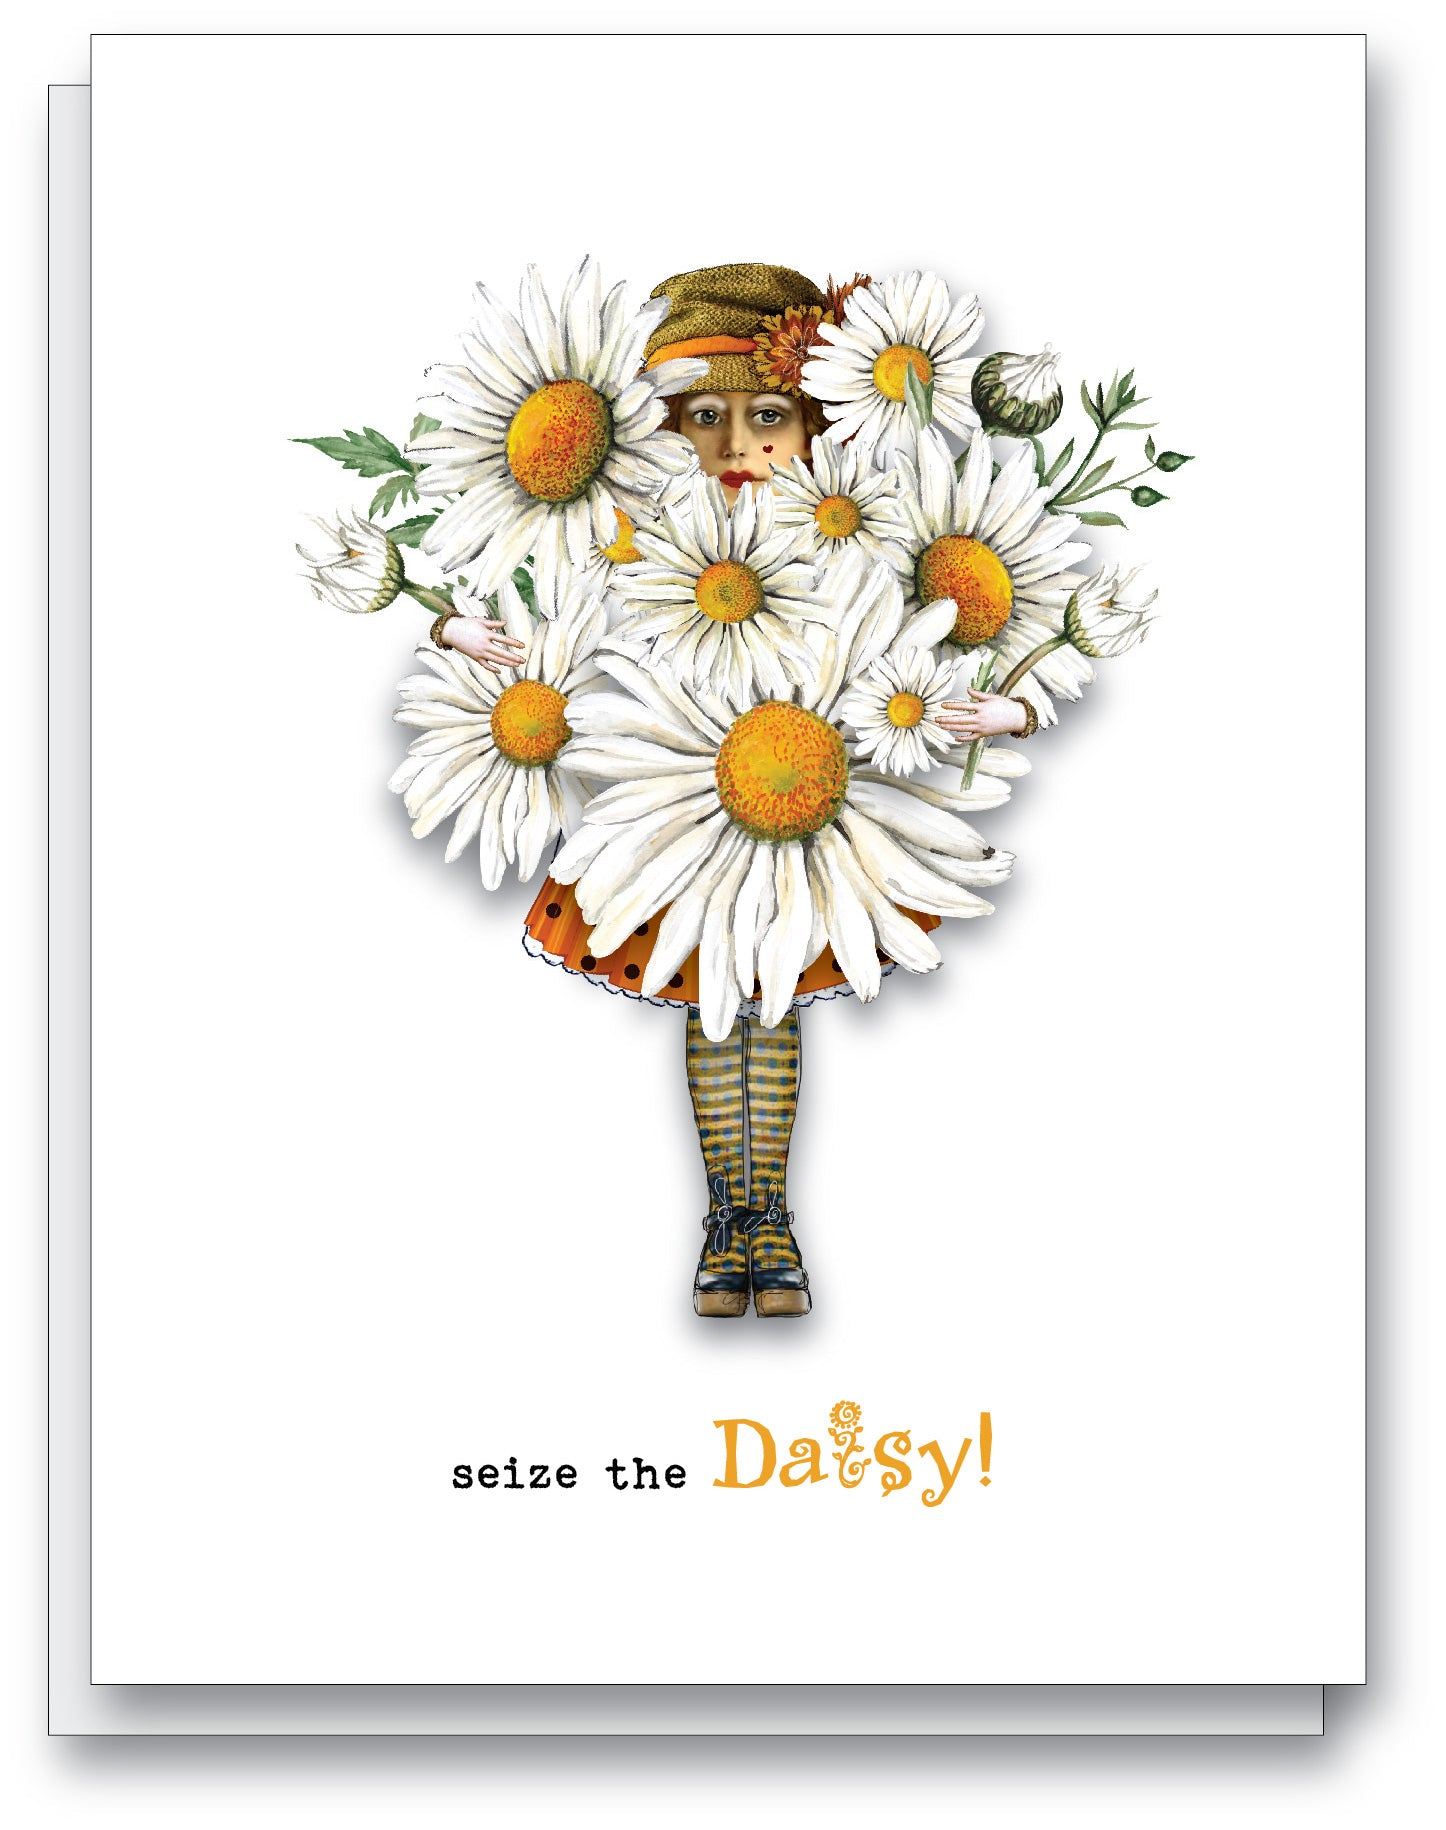 Seize the Daisy